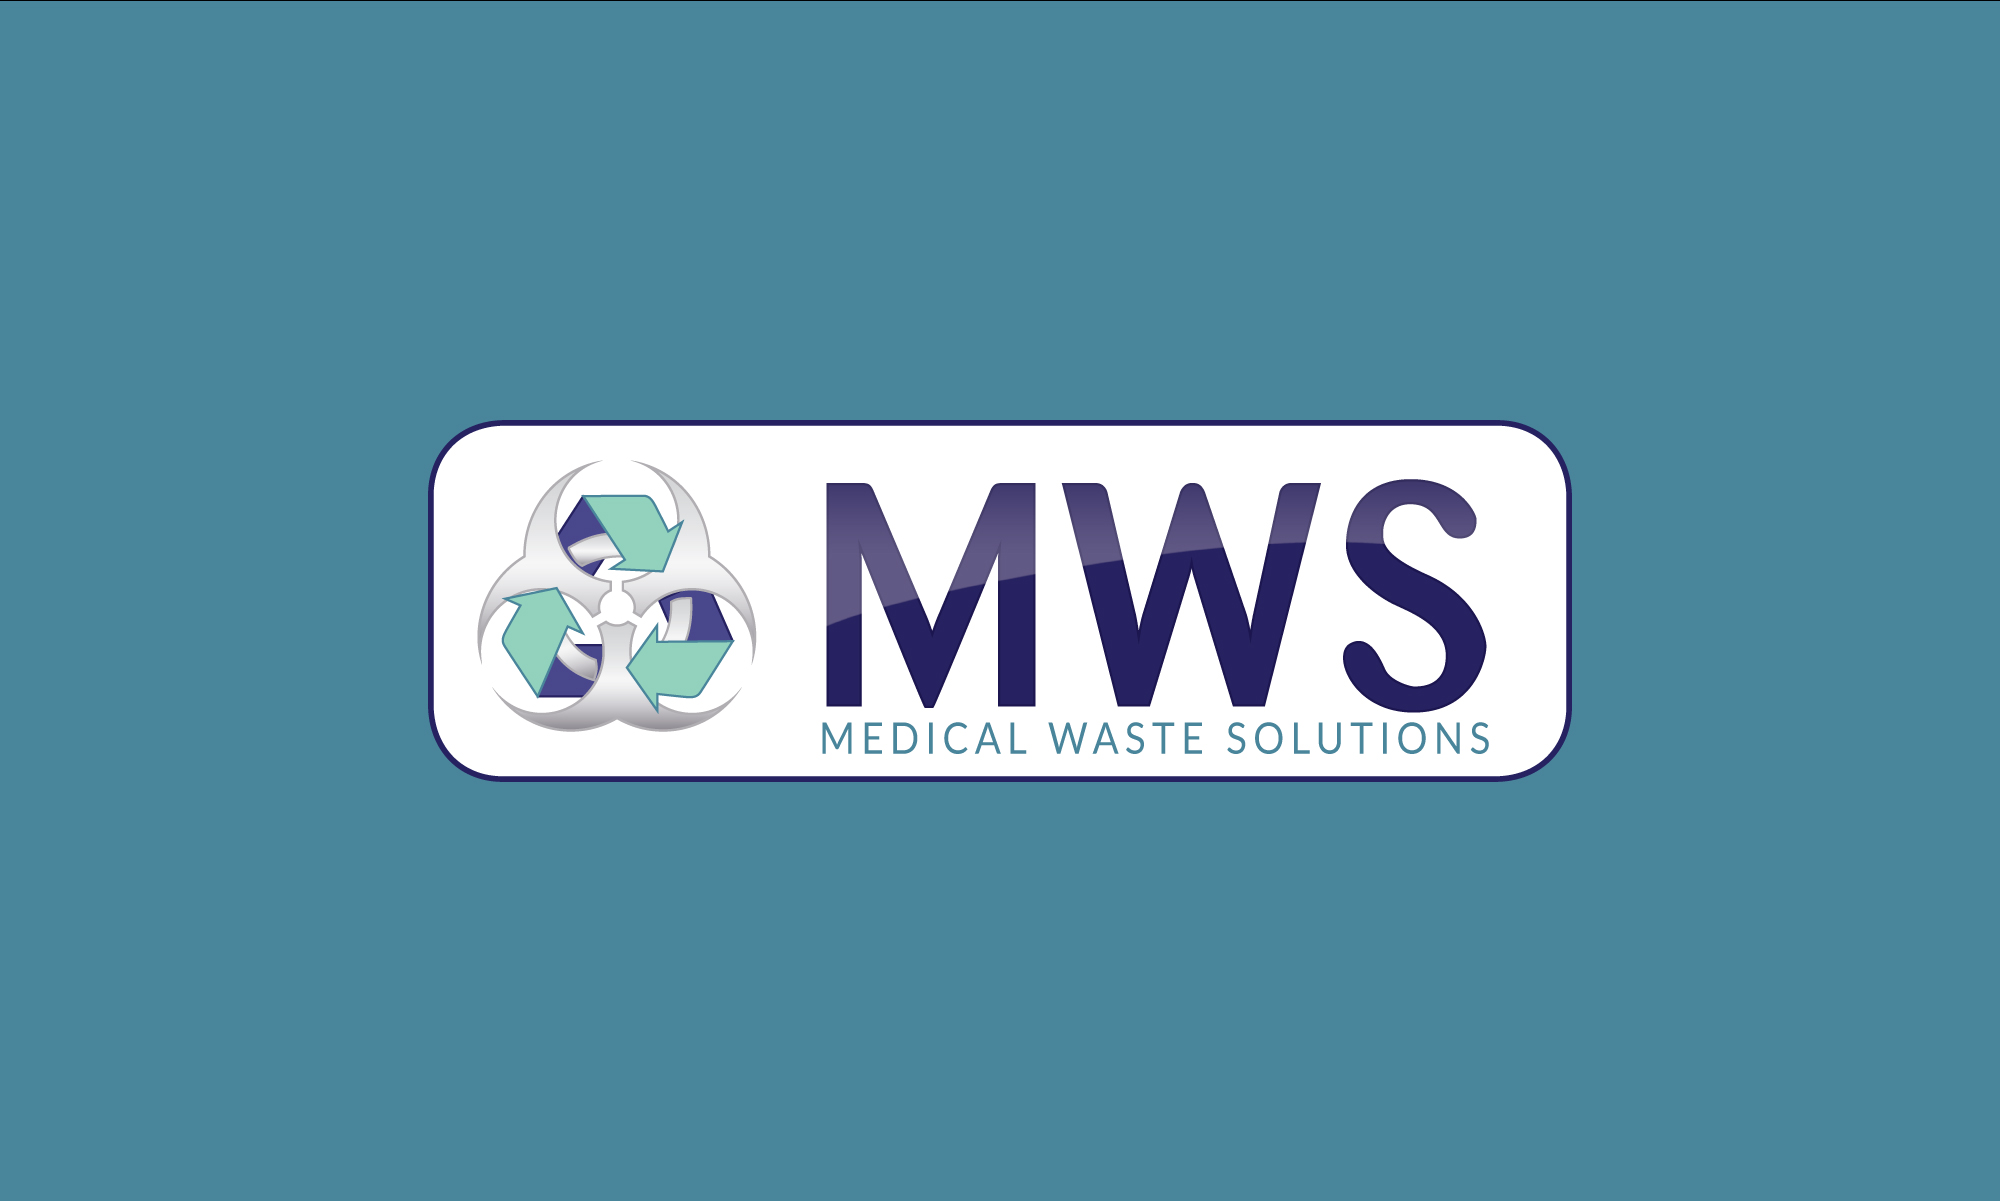 Medical Waste Solutions